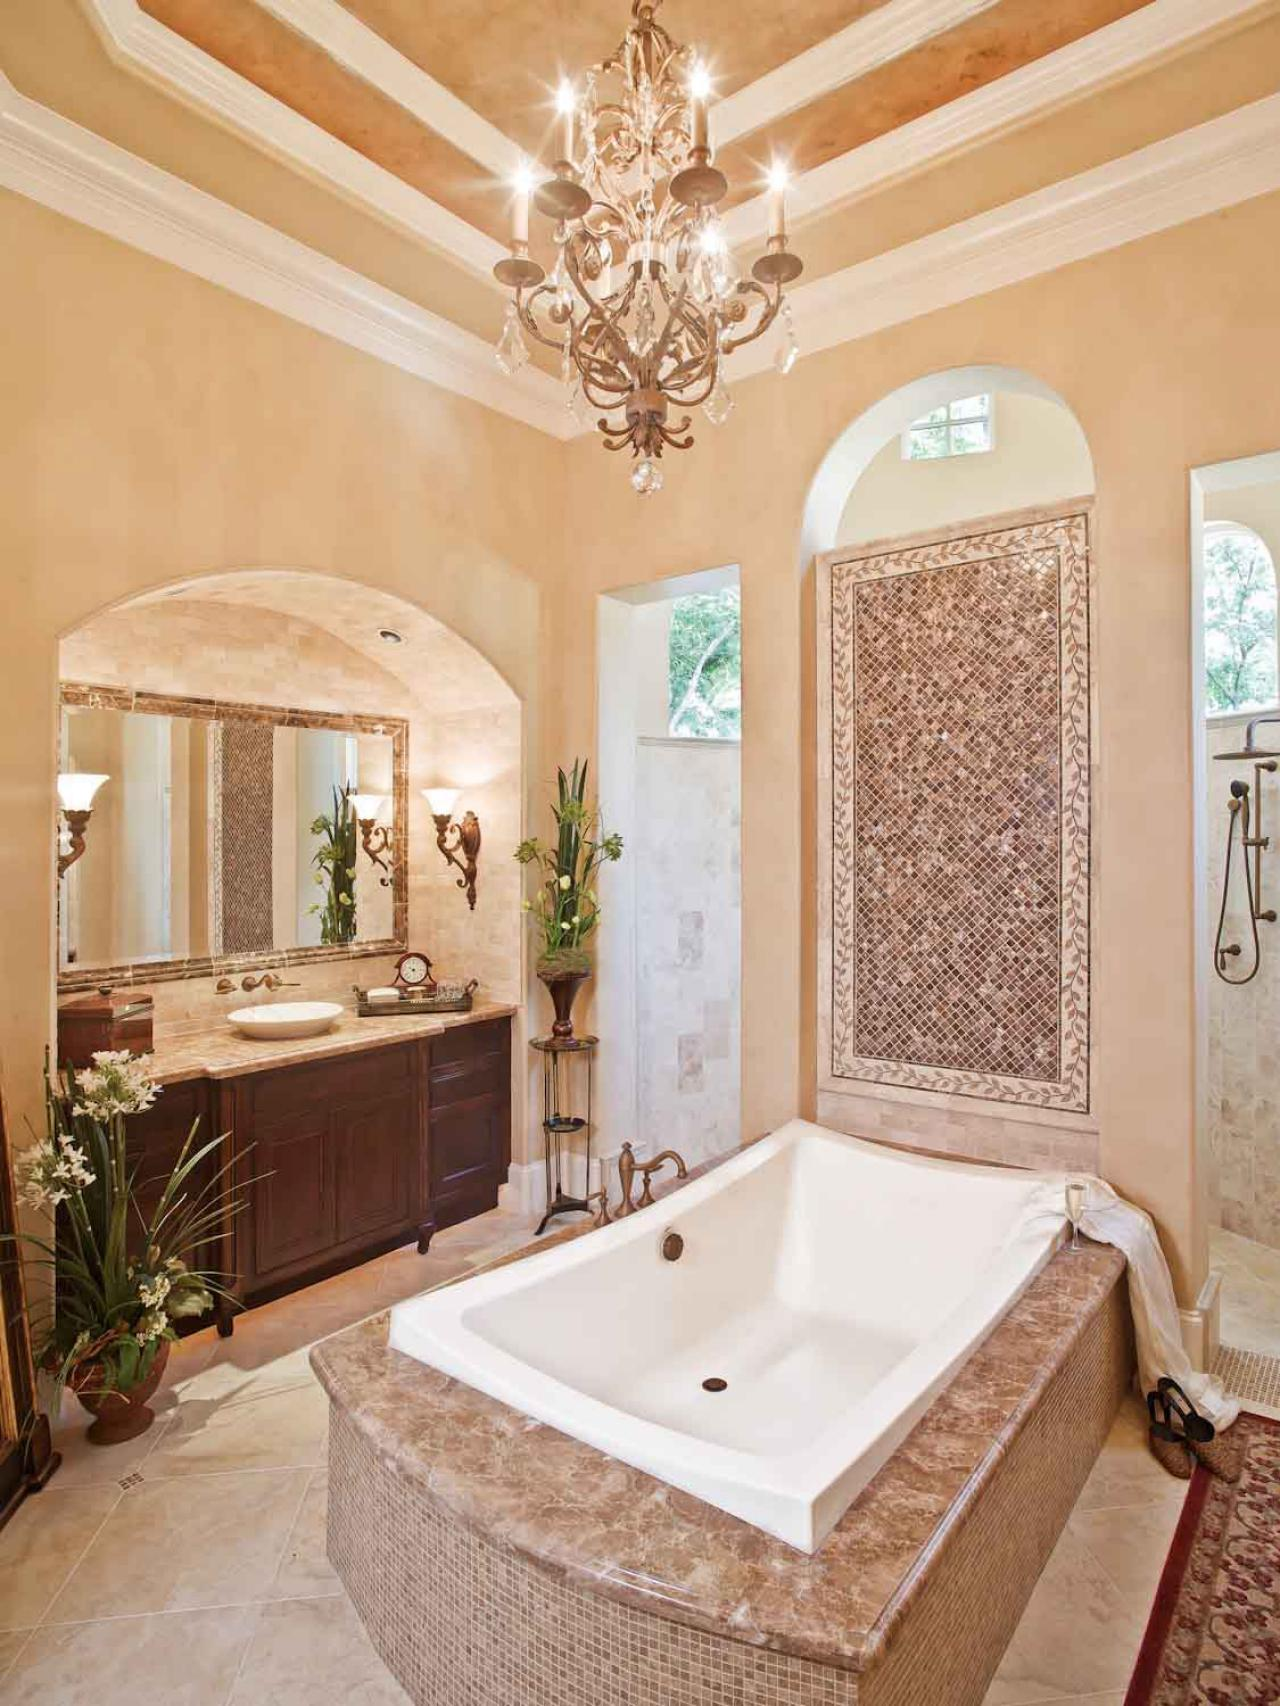 20 luxurious bathrooms with elegant chandelier lighting for Elegant master bathroom ideas